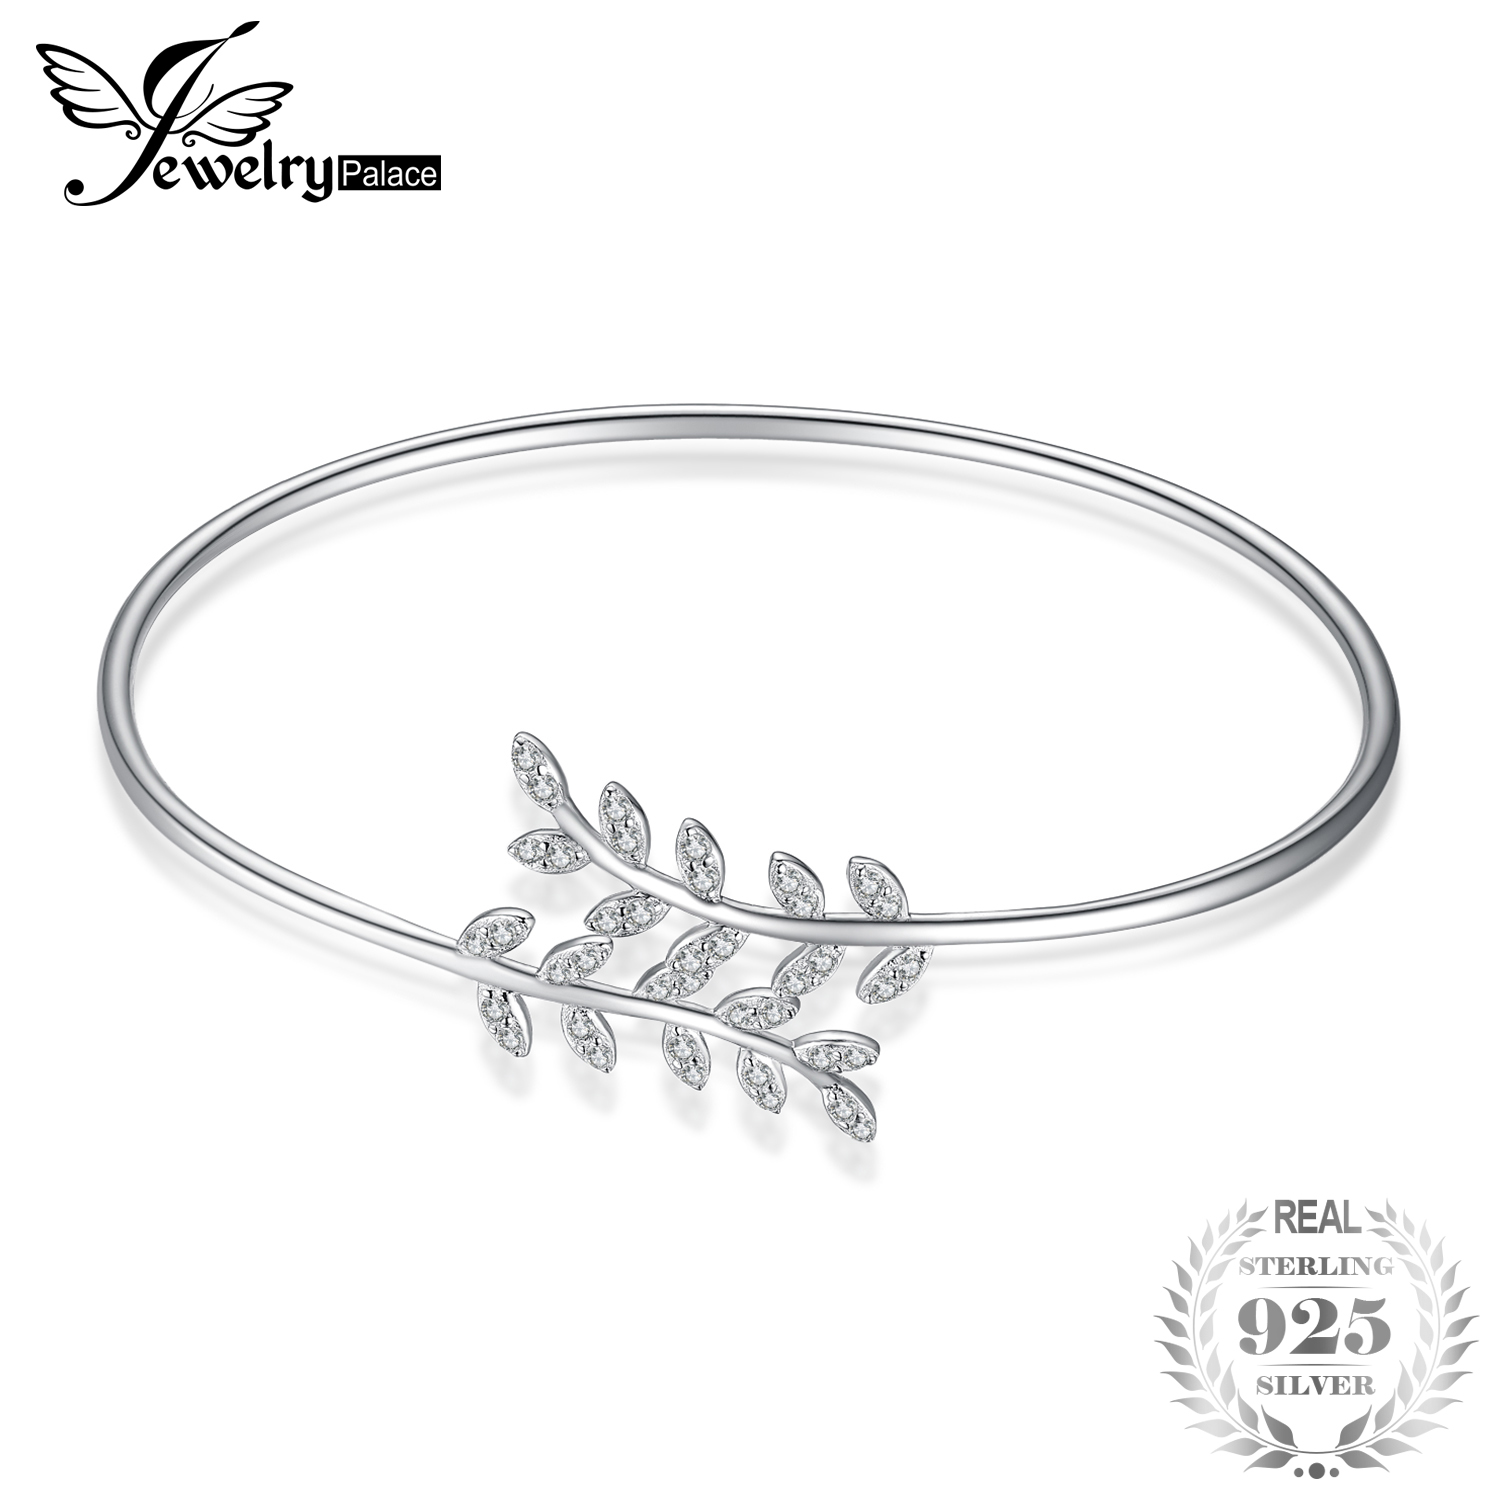 JewelryPalace Leaf 1.2ct Cubic Zirconia Adjustable Cuff Bracelet 925 Sterling Silver Fashion Open Leaf Cuff Bracelets For Women a suit of geometric leaf cuff rings